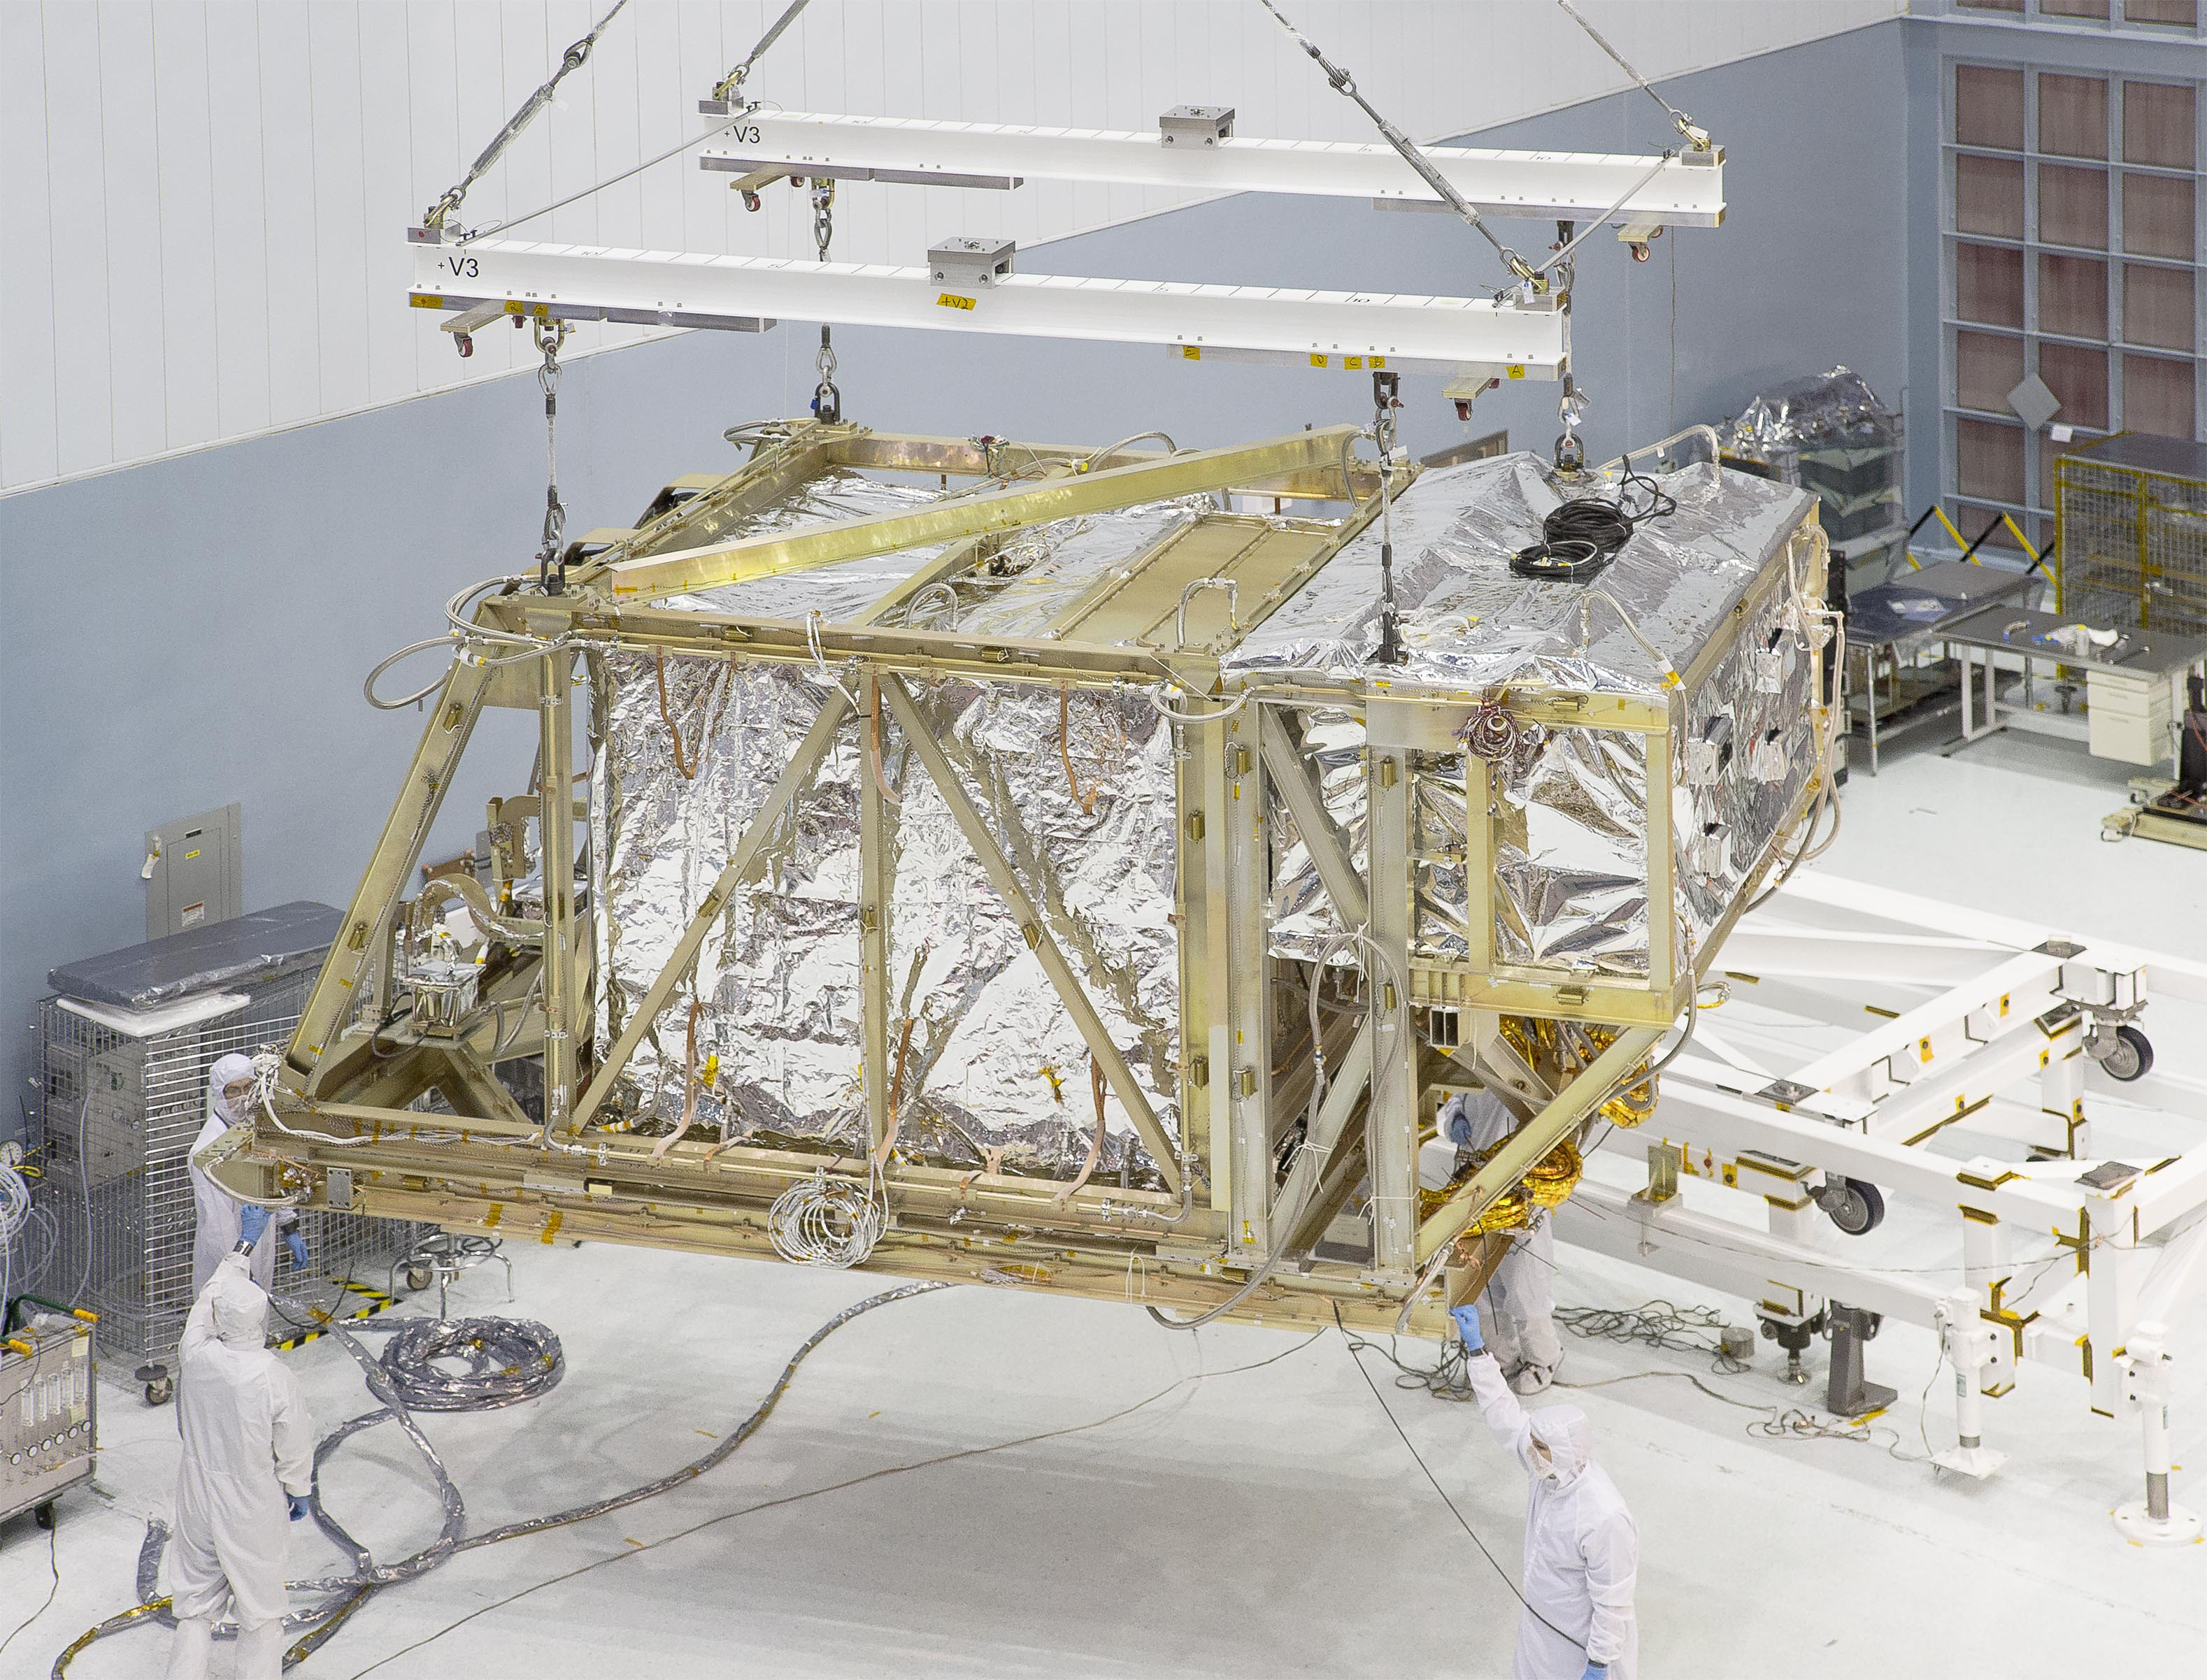 File:NASA's James Webb Space Telescope Science Instruments Begin